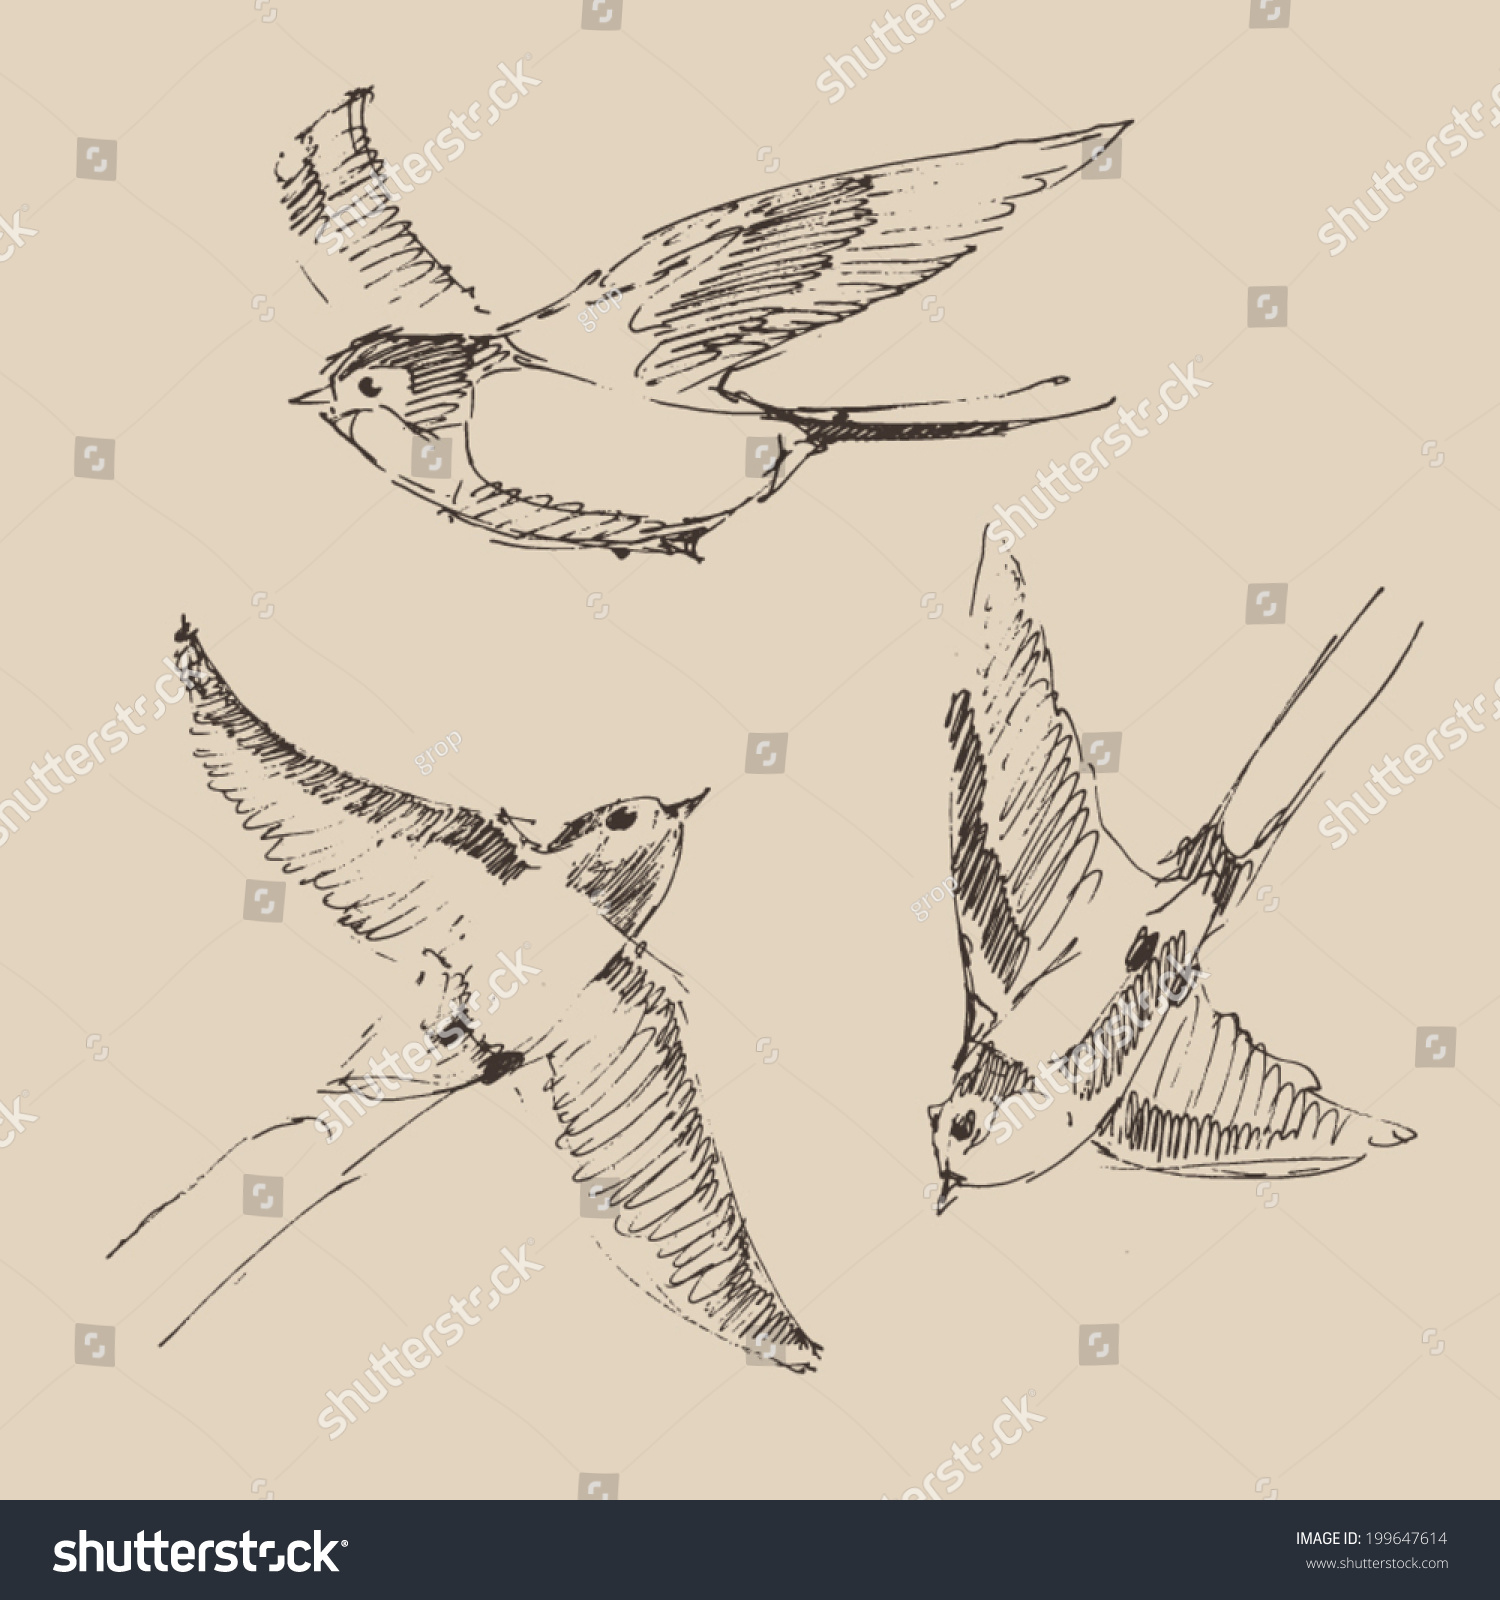 Set of sketches of flying swallows stock vector illustration - Swallows Flying Bird Set Collection Vintage Illustration Engraved Retro Style Hand Drawn